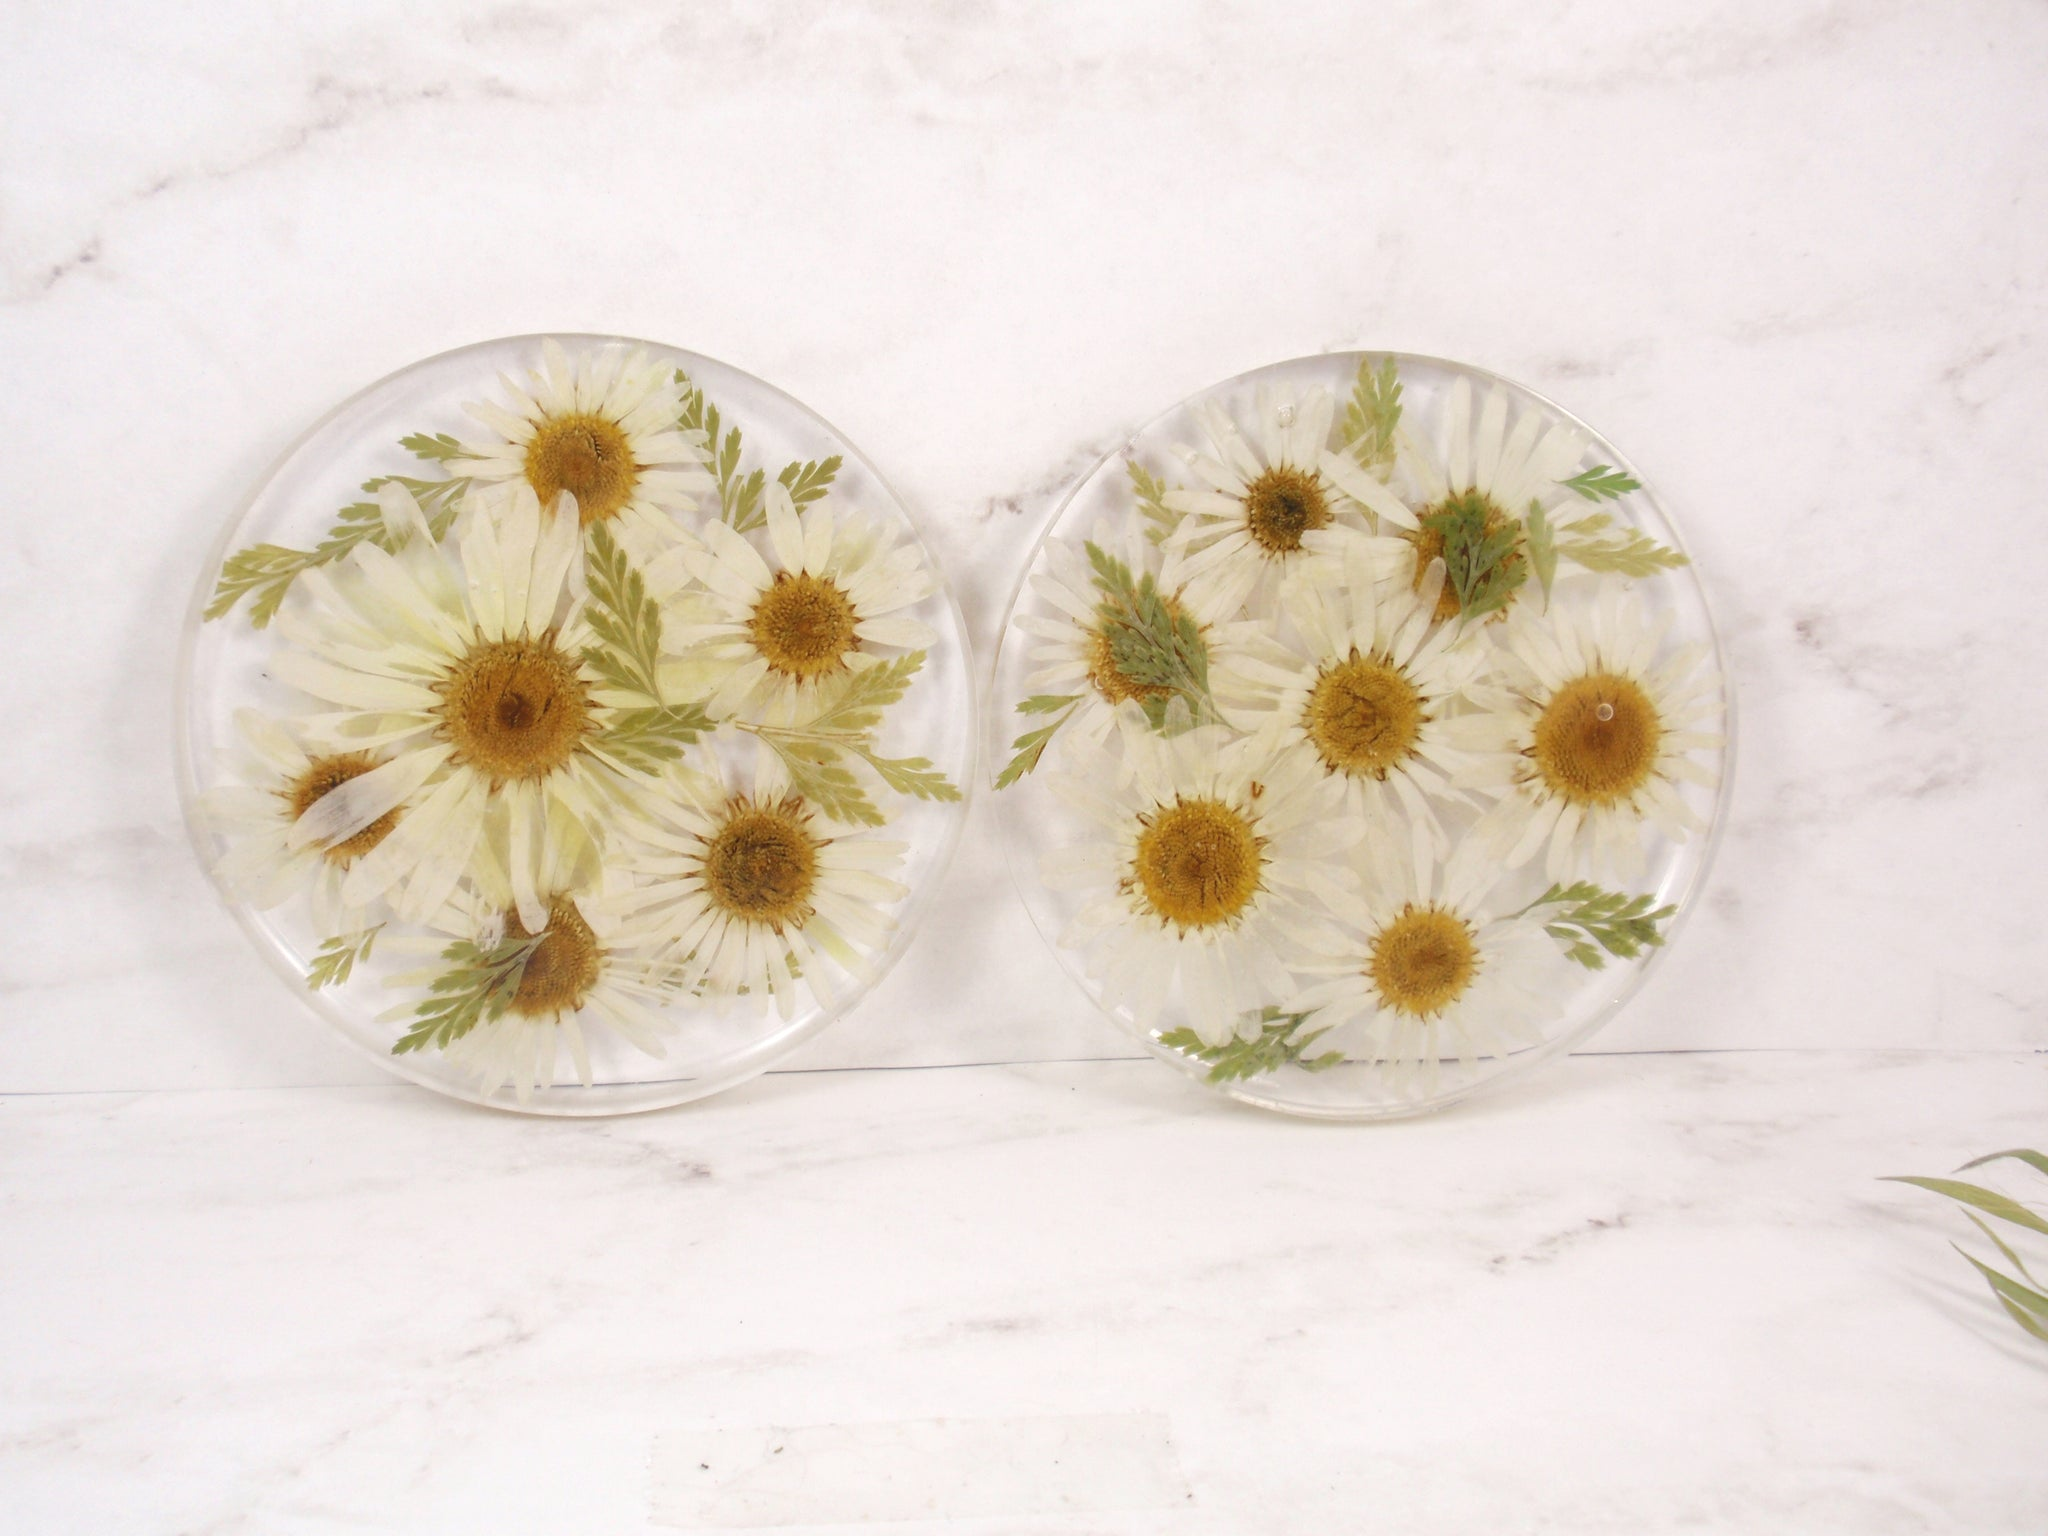 Daisy flower resin coaster home decor decorative tile